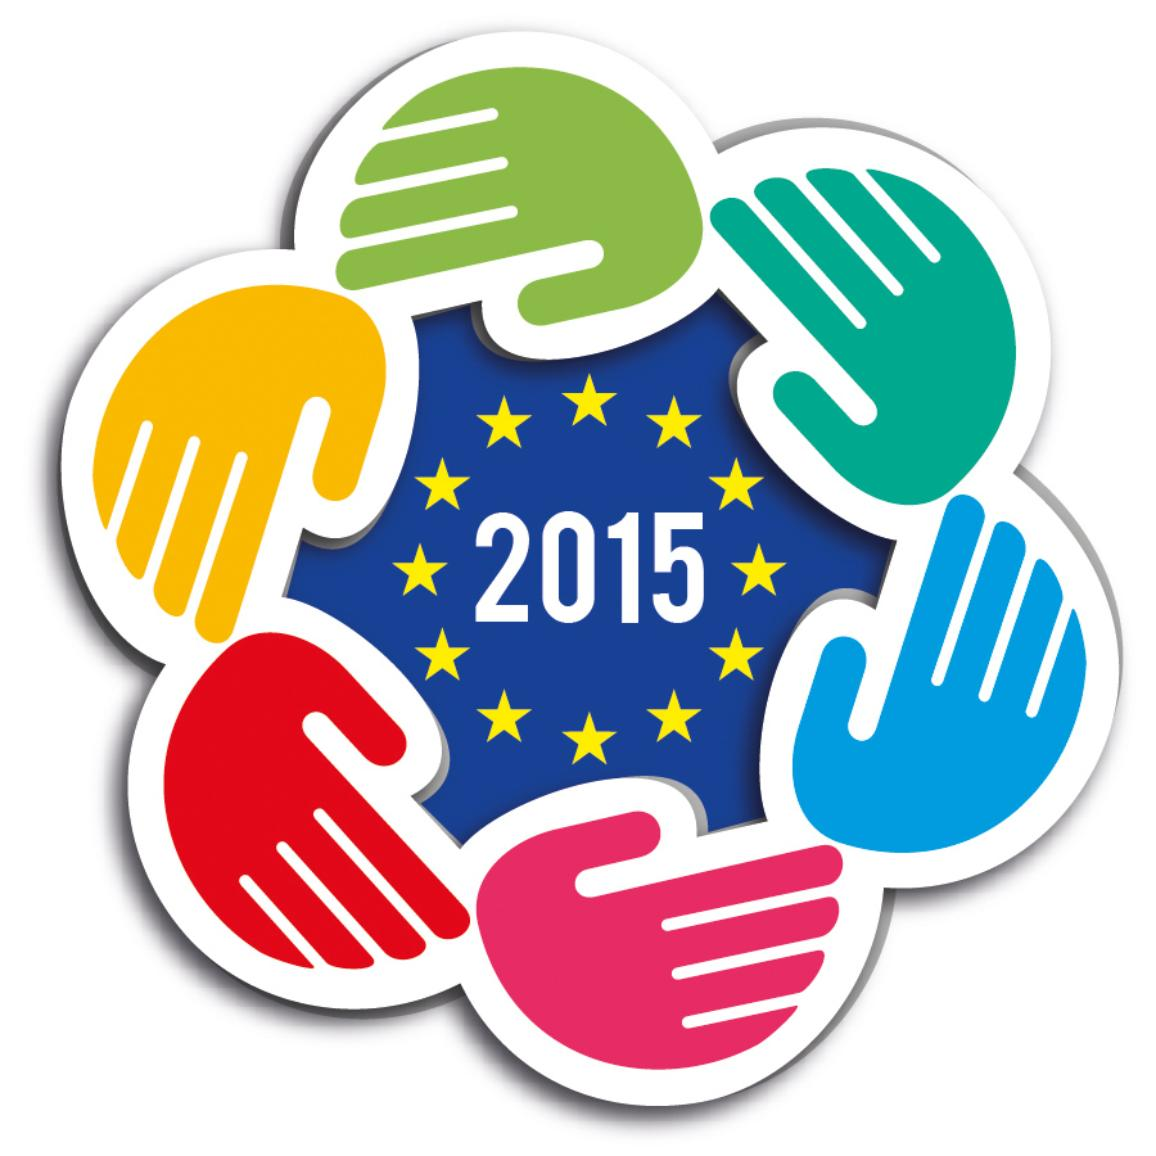 Charlemagne Youth Prize logo 2015